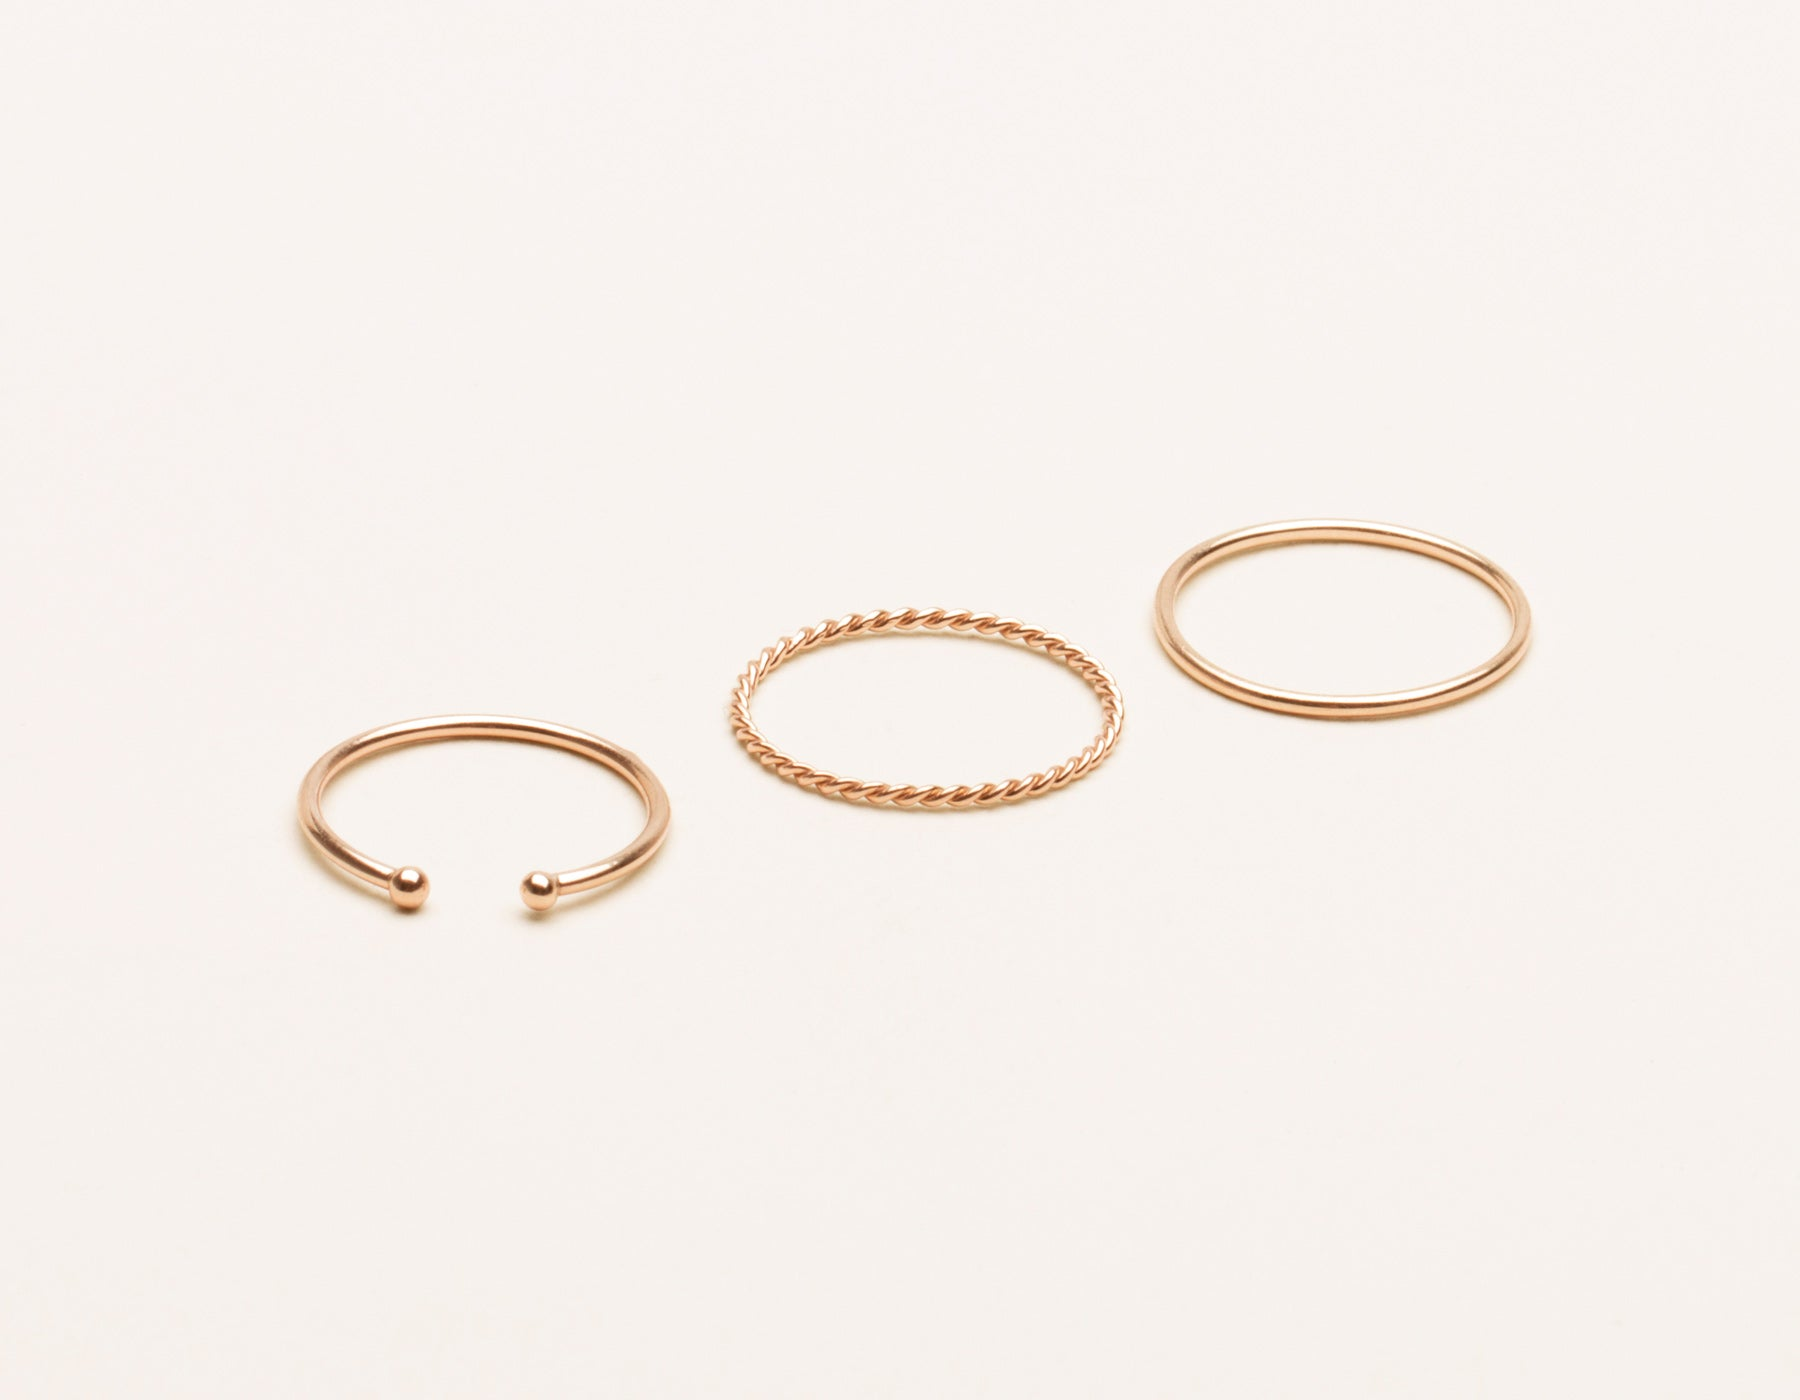 vrai and Oro delicate 14k solid gold classic simple stack skinny stacker twist ring dot cuff, 14K Rose Gold